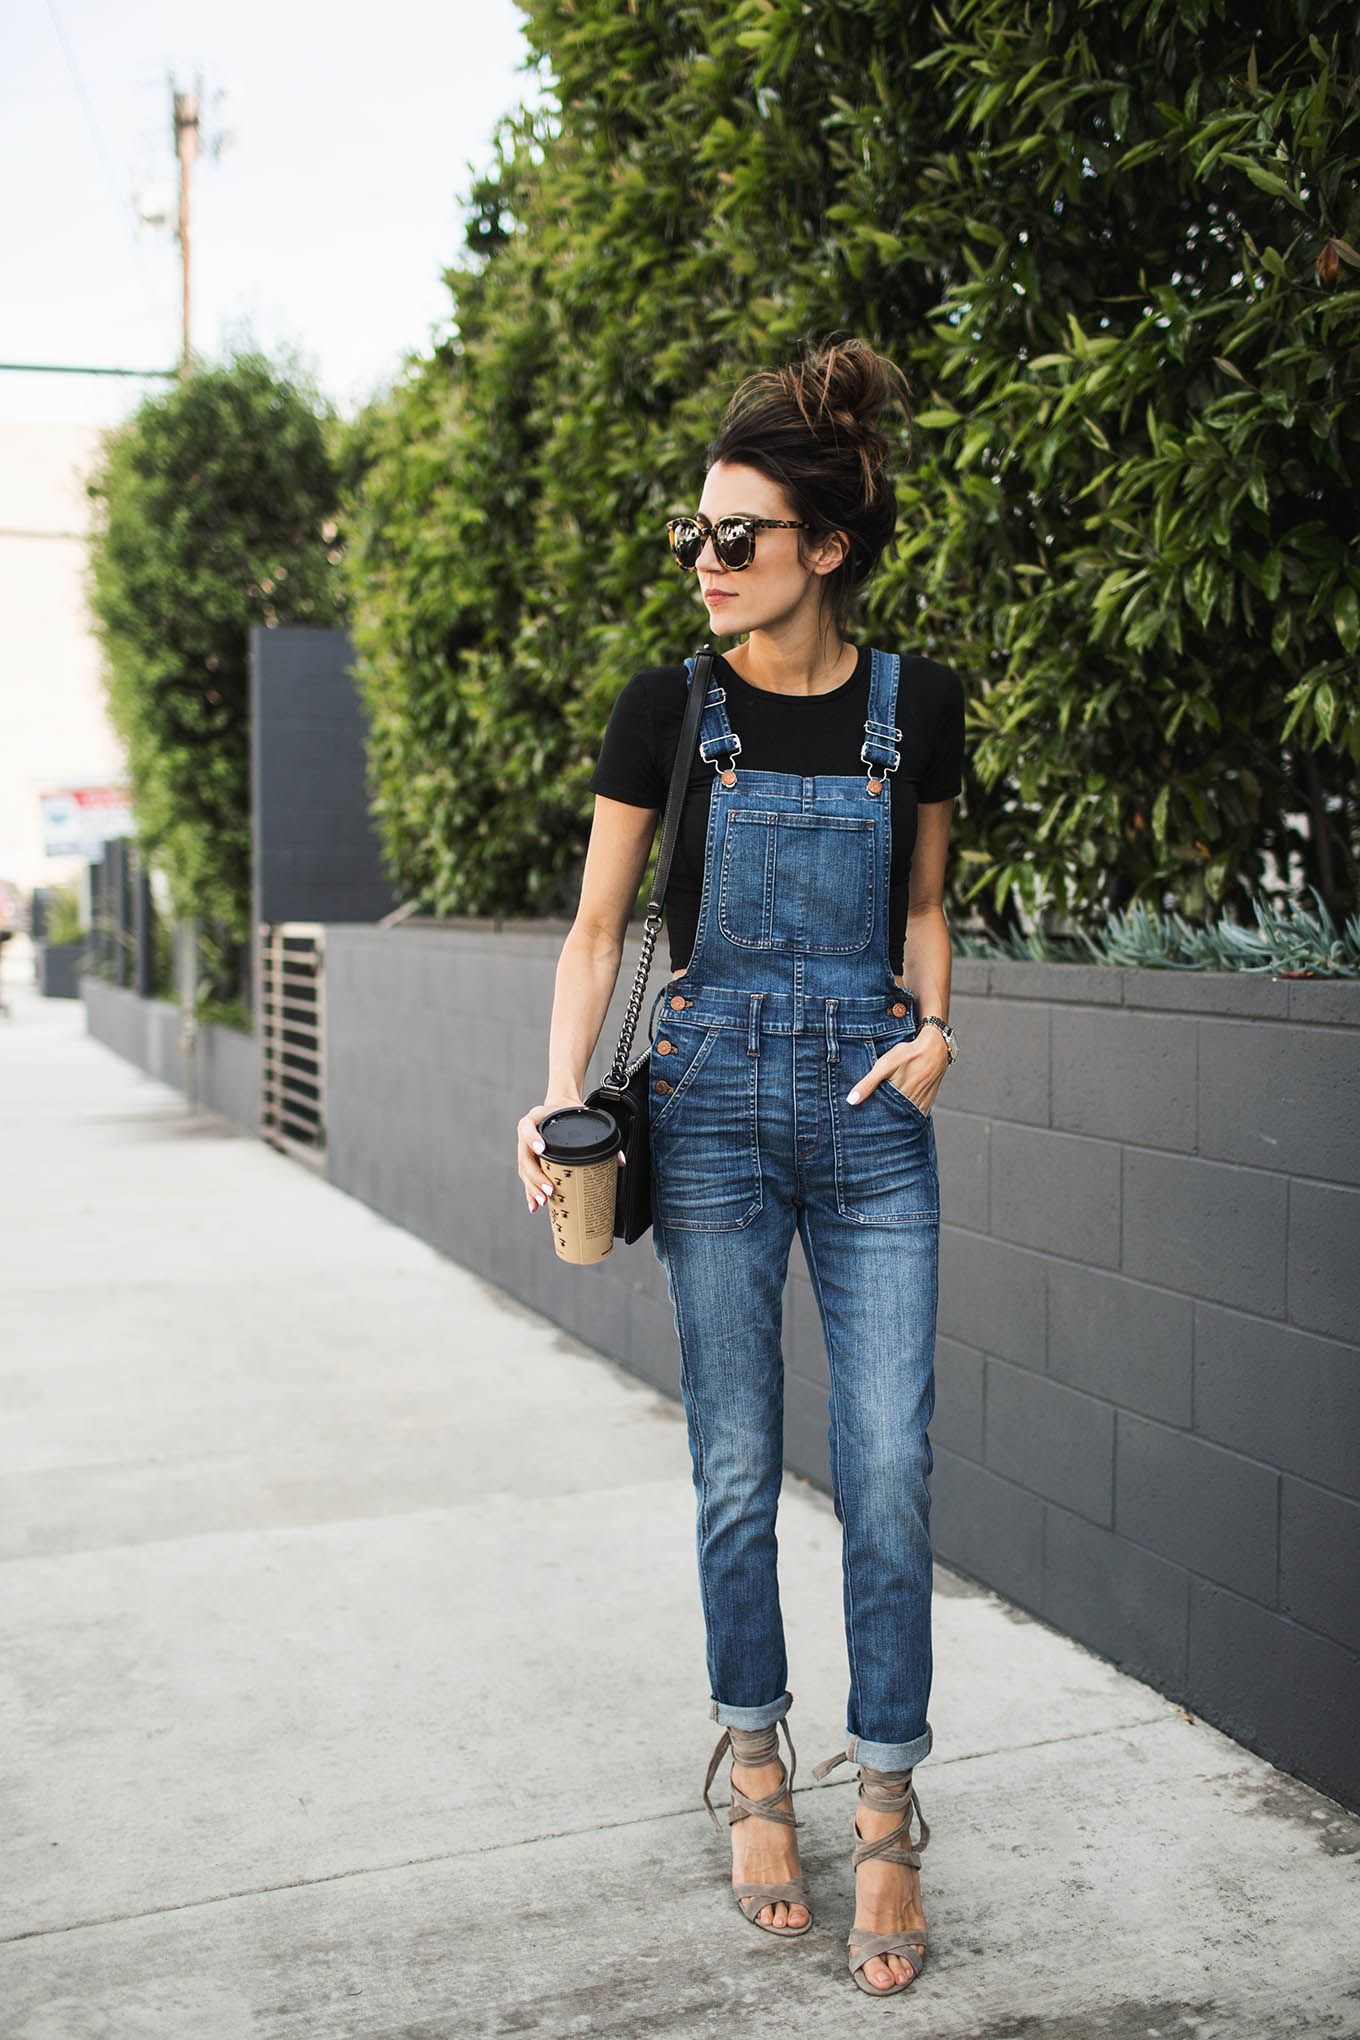 purchase original distinctive design hot-selling professional Spring Overalls | Hello Fashion Blog | Fashion, Overalls ...